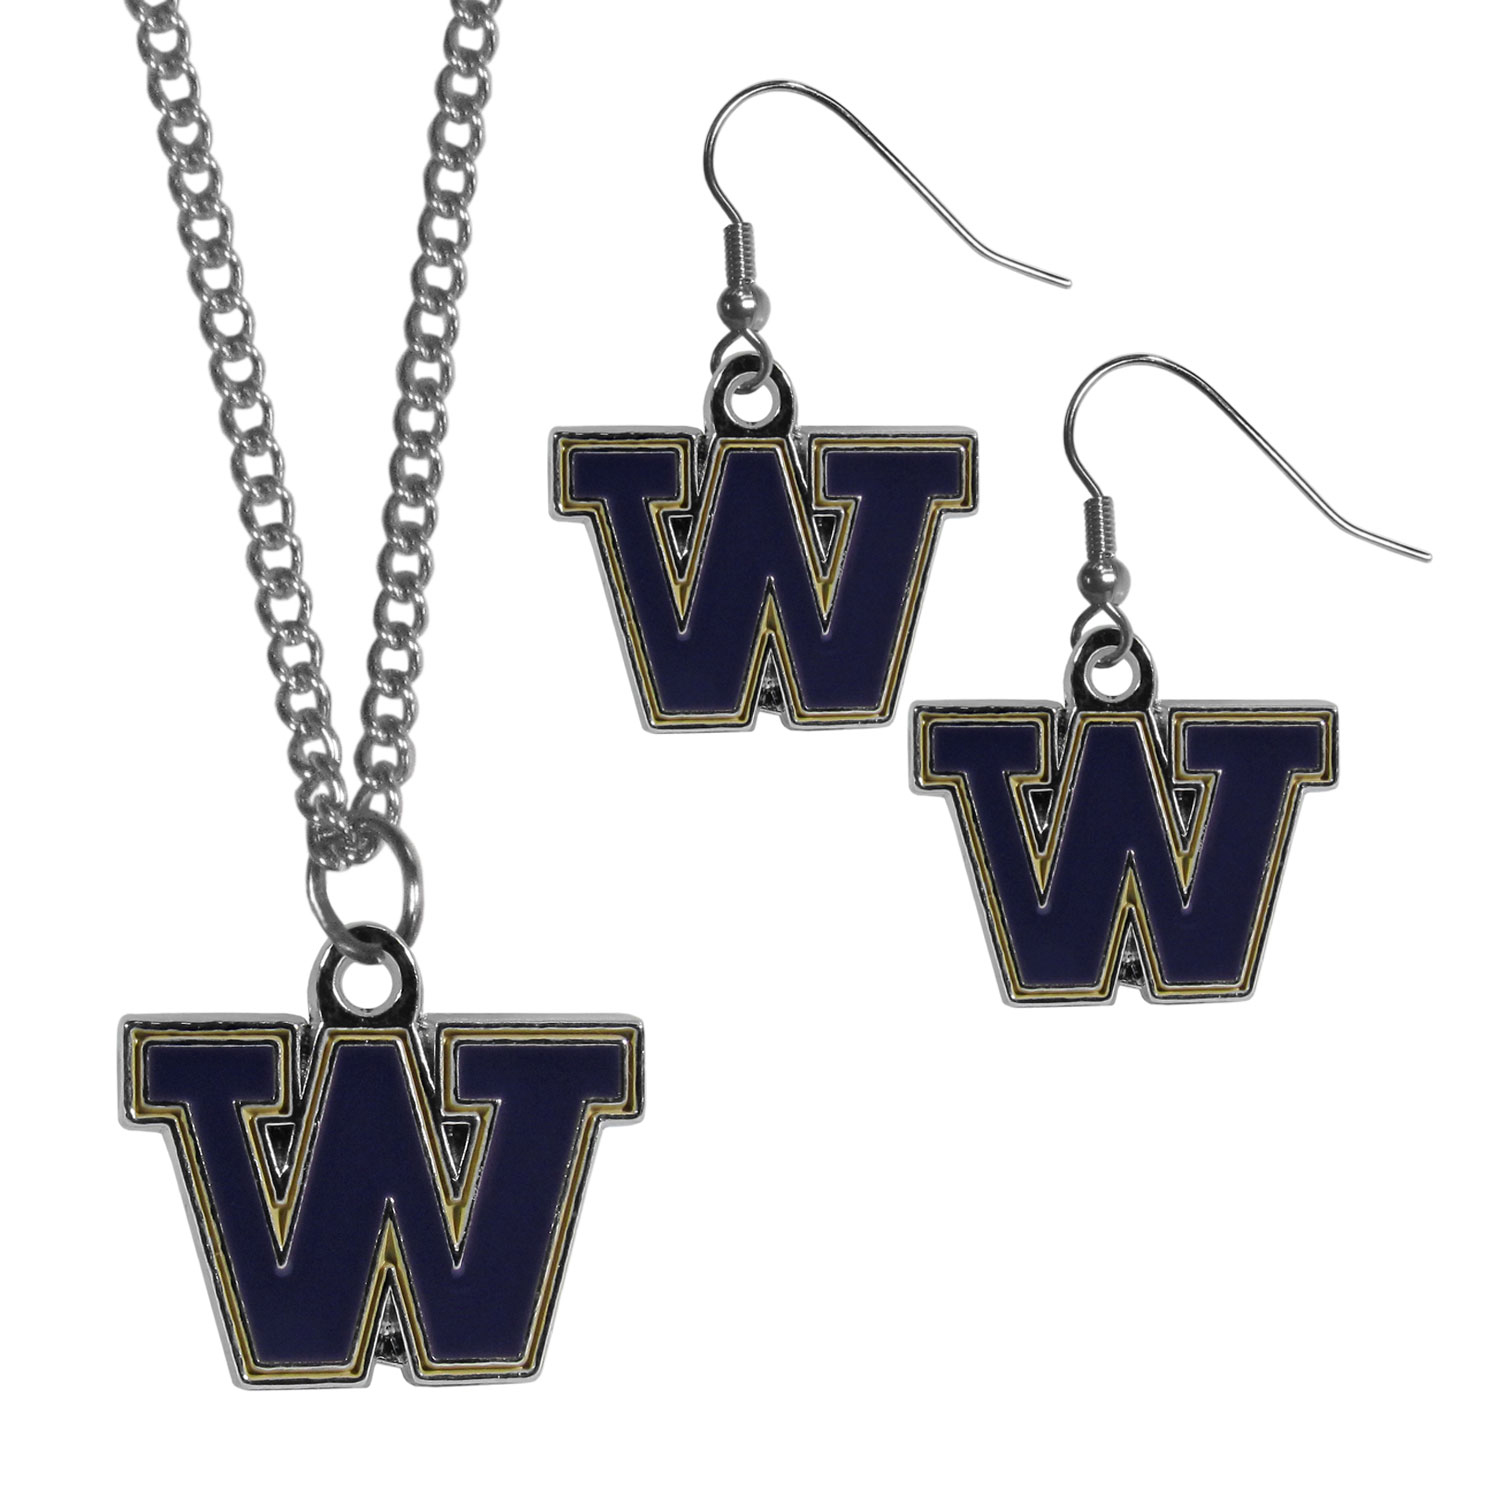 Washington Huskies Dangle Earrings and Chain Necklace Set - This classic jewelry set contains are most popular Washington Huskies dangle earrings and 22 inch chain necklace. The trendy, dangle earrings are lightweight and feature a fully cast metal team charm with enameled team colors. The matching necklace completes this fashion forward combo and is a spirited set that is perfect for game day but nice enough for everyday.